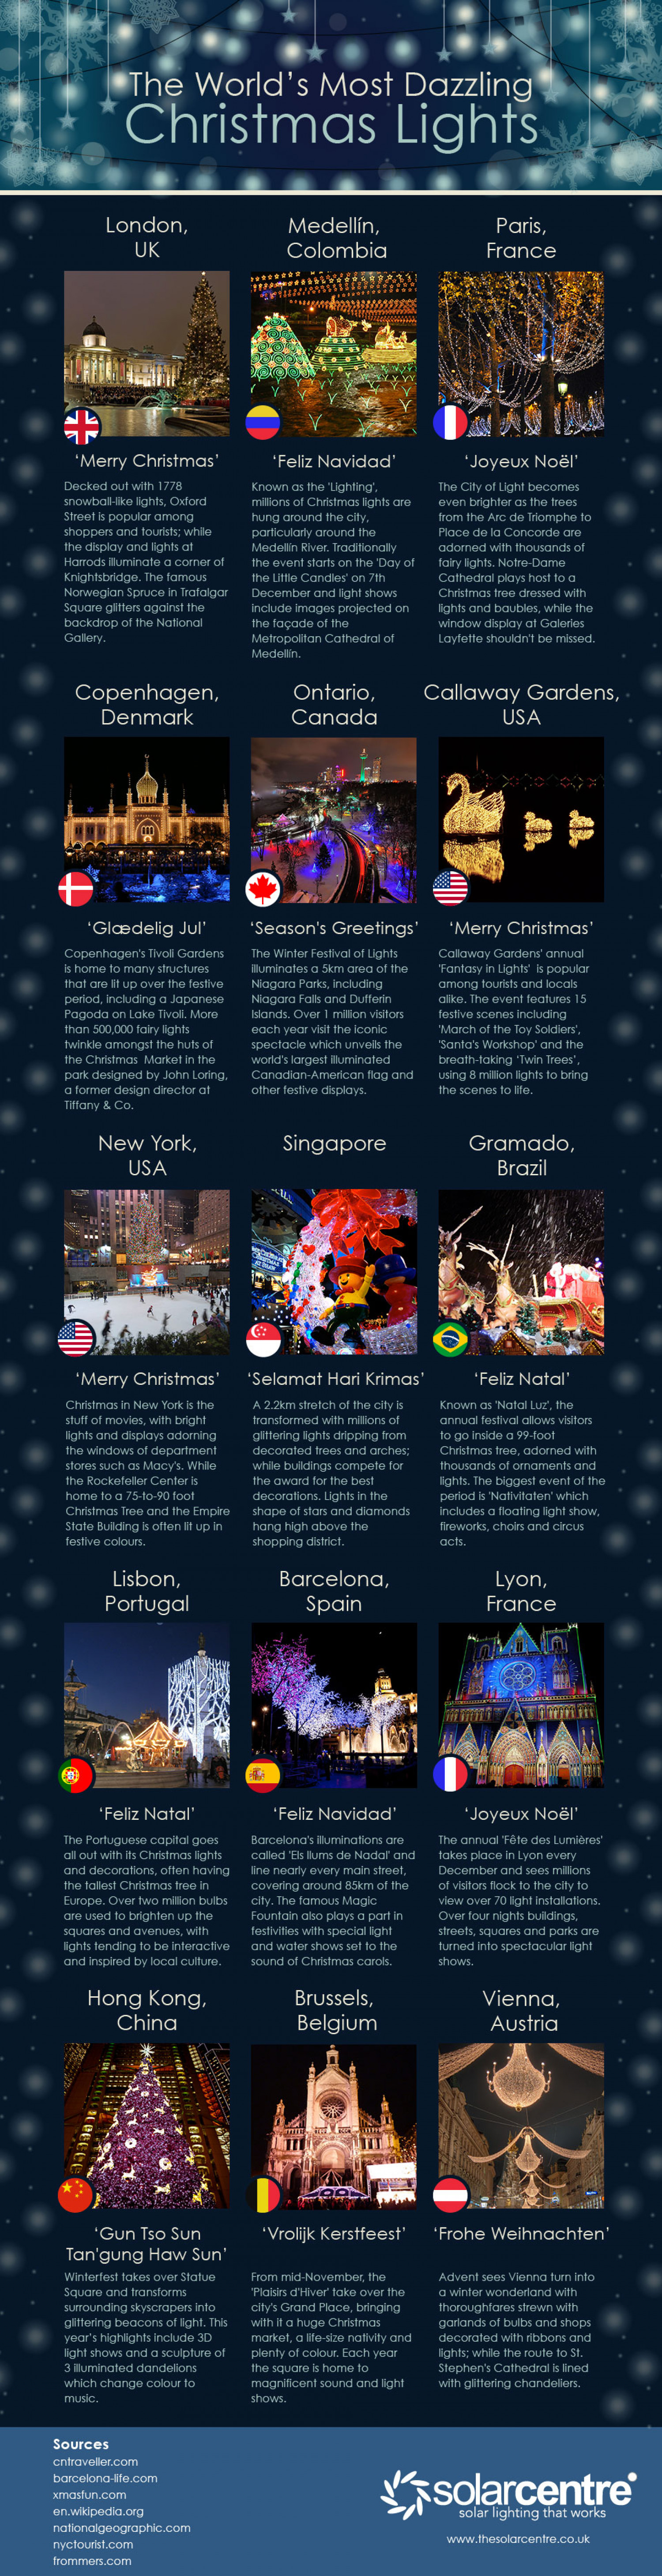 The World's Most Dazzling Christmas Lights Infographic